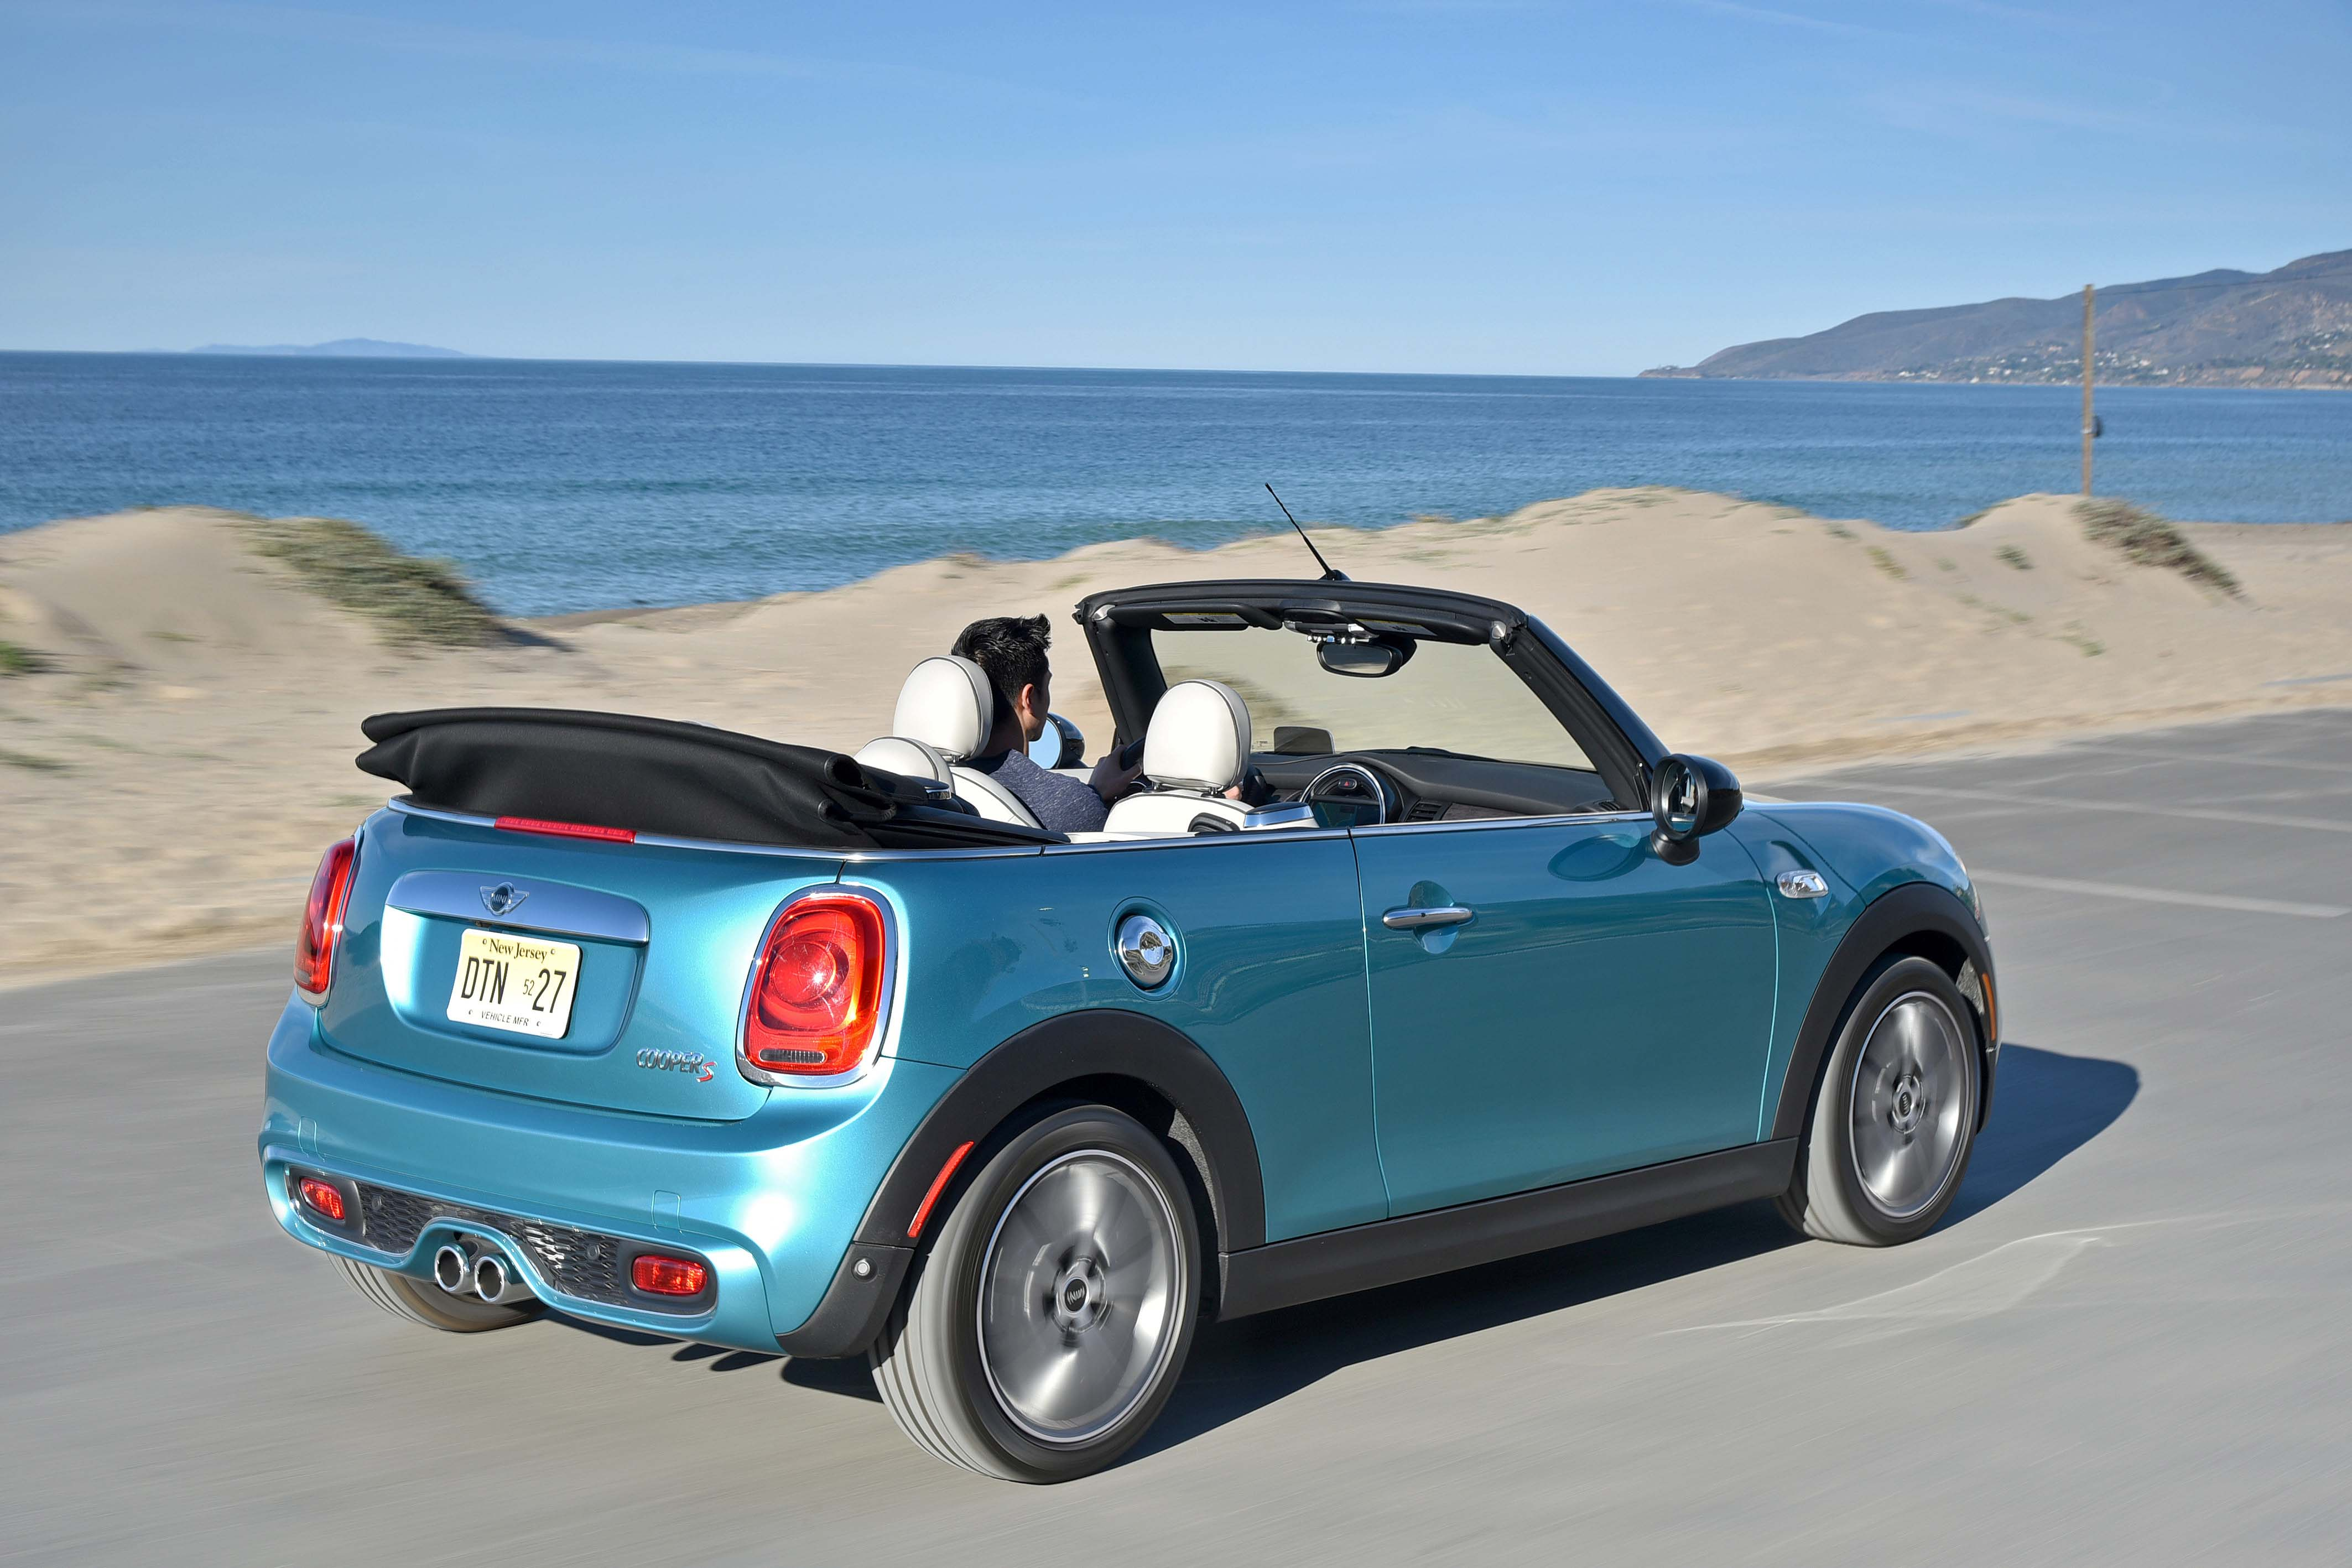 2016 mini cooper convertible sunny side up mini motoring. Black Bedroom Furniture Sets. Home Design Ideas